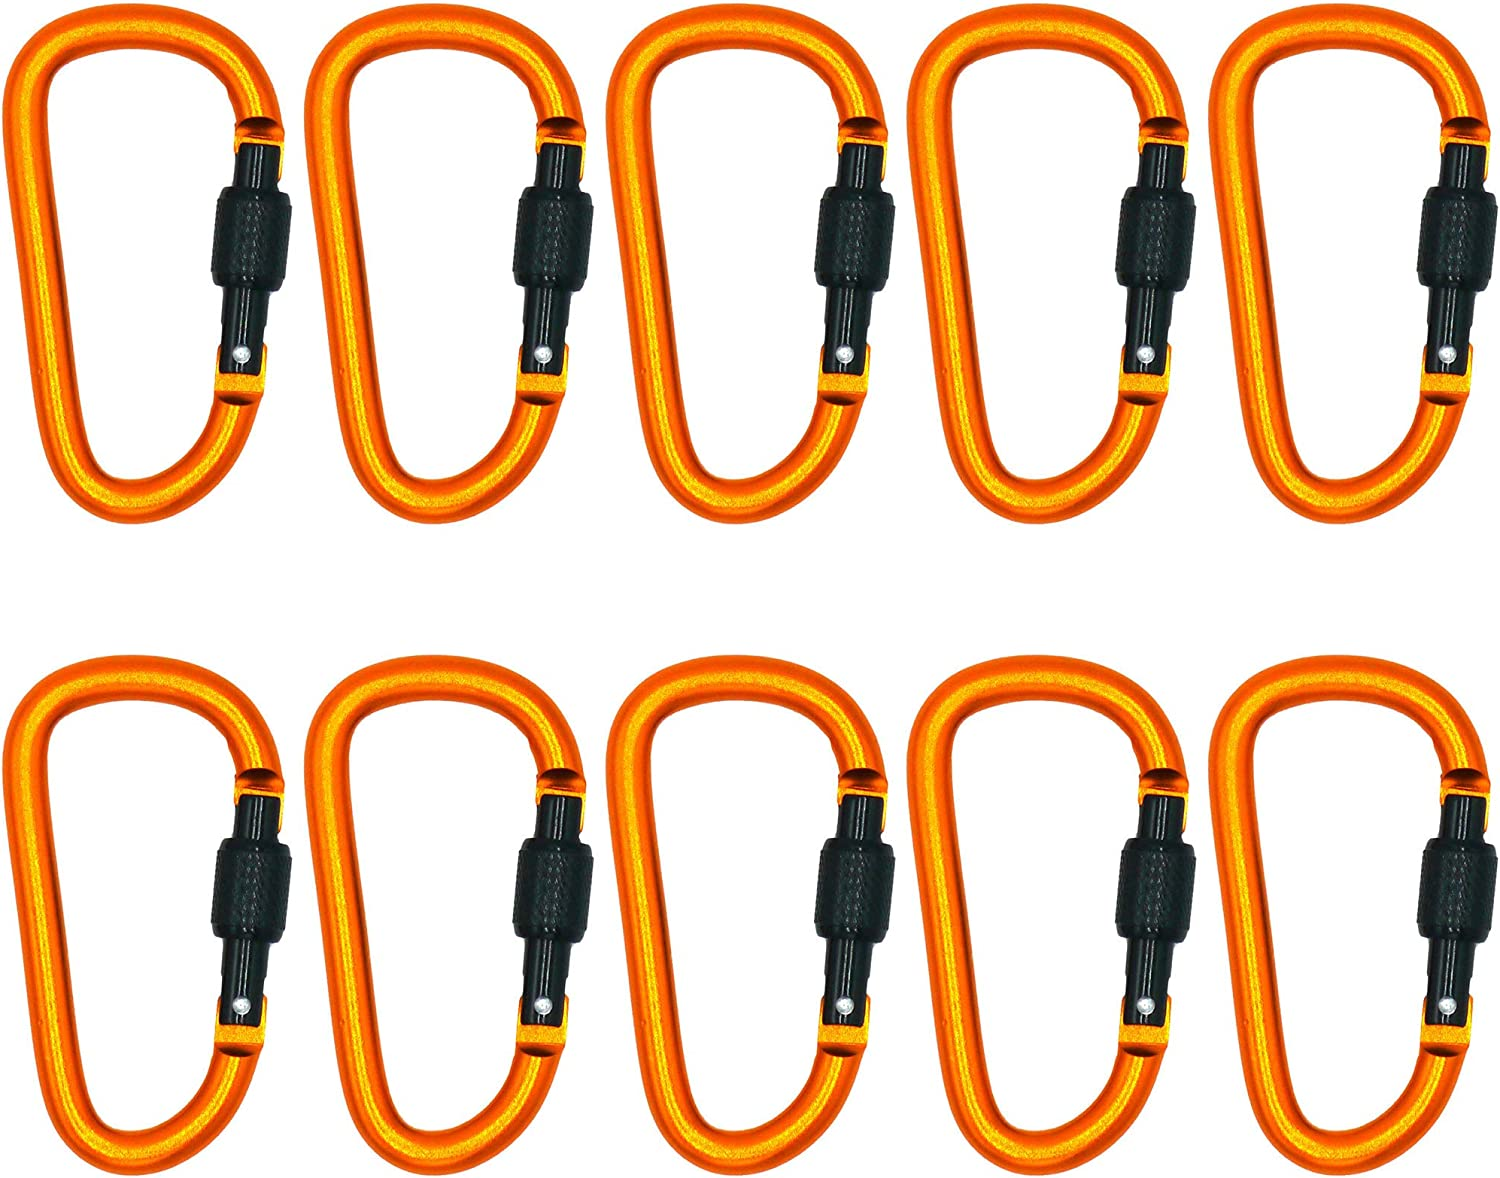 PLX Screw Locking Carabiner Clip Aluminum D-Ring 10 Pack Orange with Black Lock